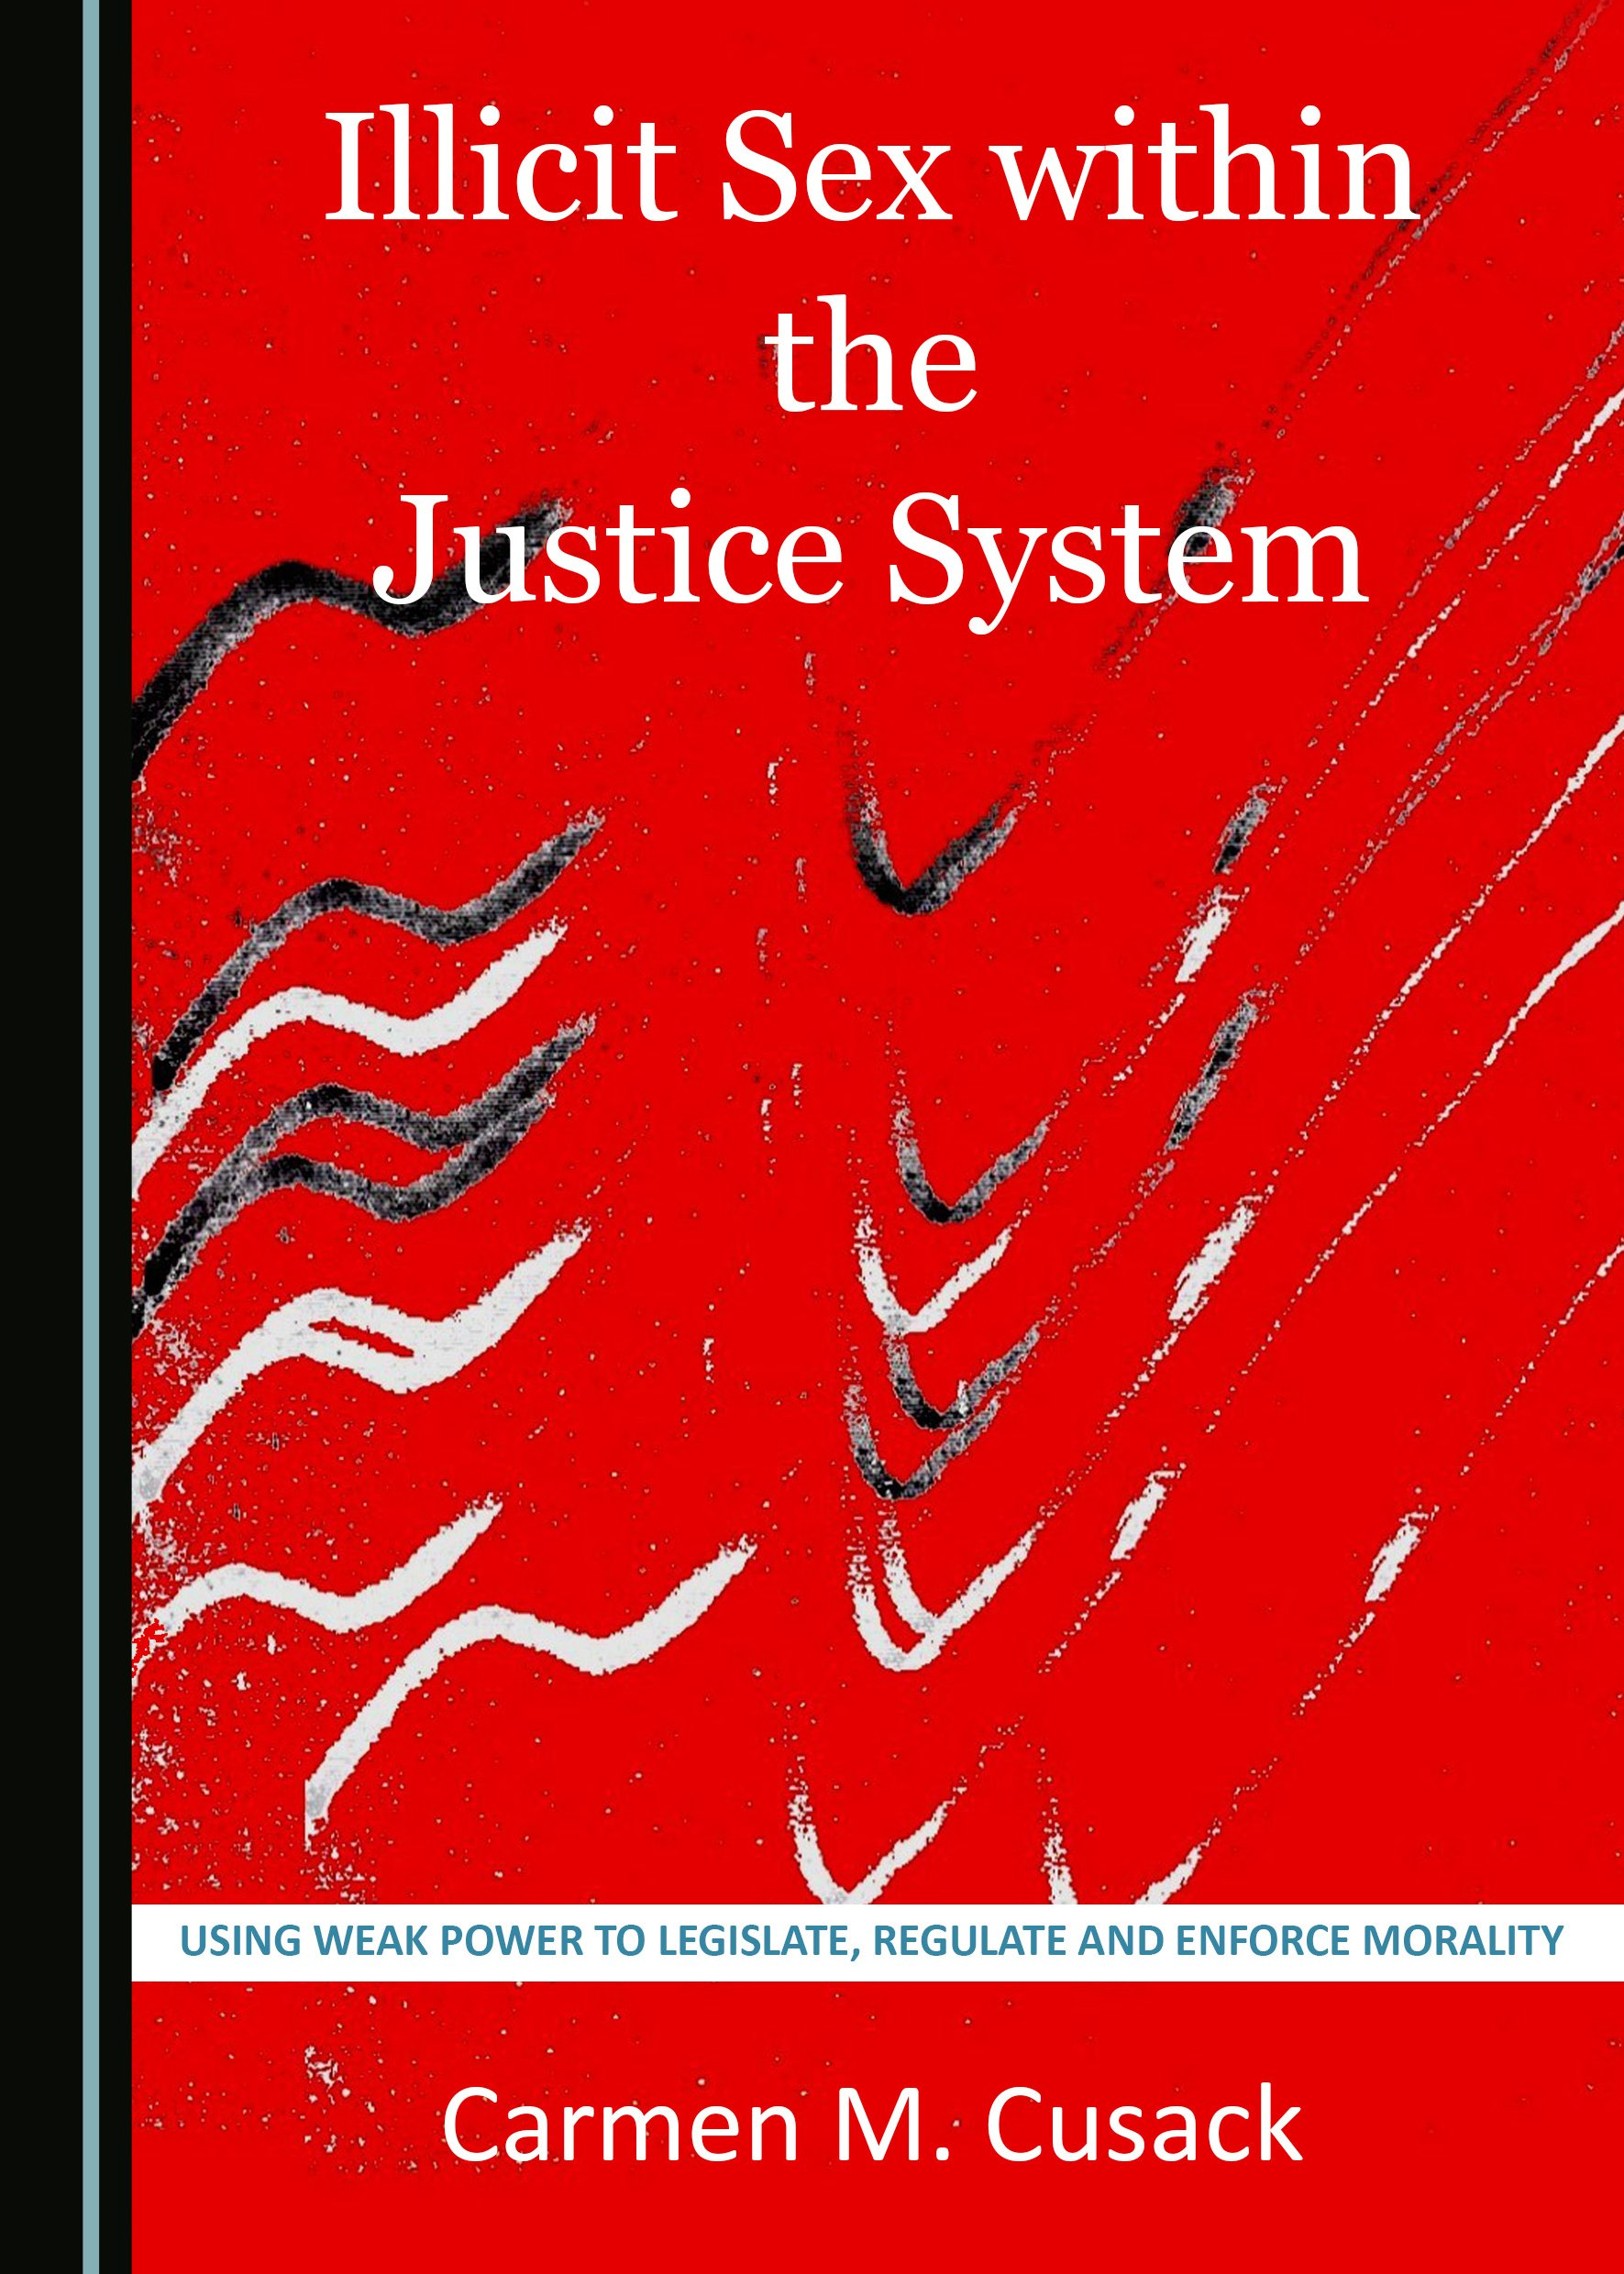 Illicit Sex within the Justice System: Using Weak Power to Legislate, Regulate and Enforce Morality